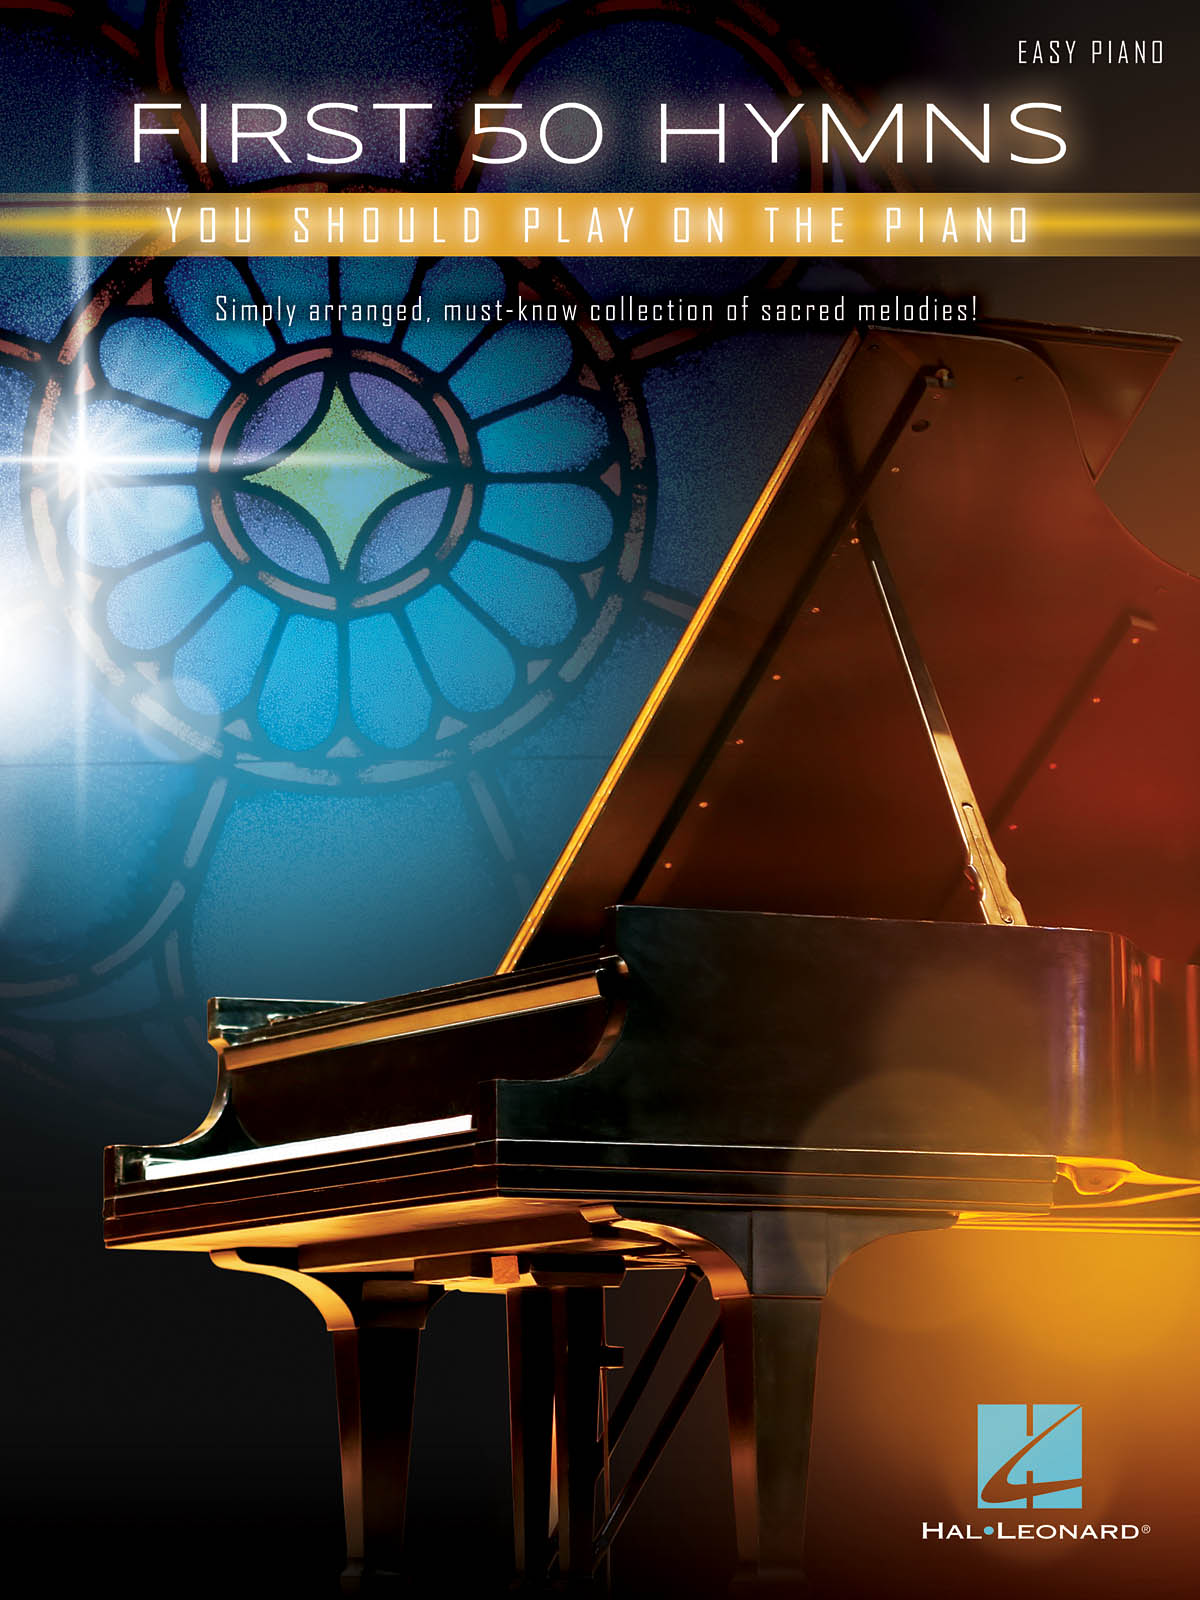 First 50 Hymns You Should Play on Piano: Easy Piano: Instrumental Album